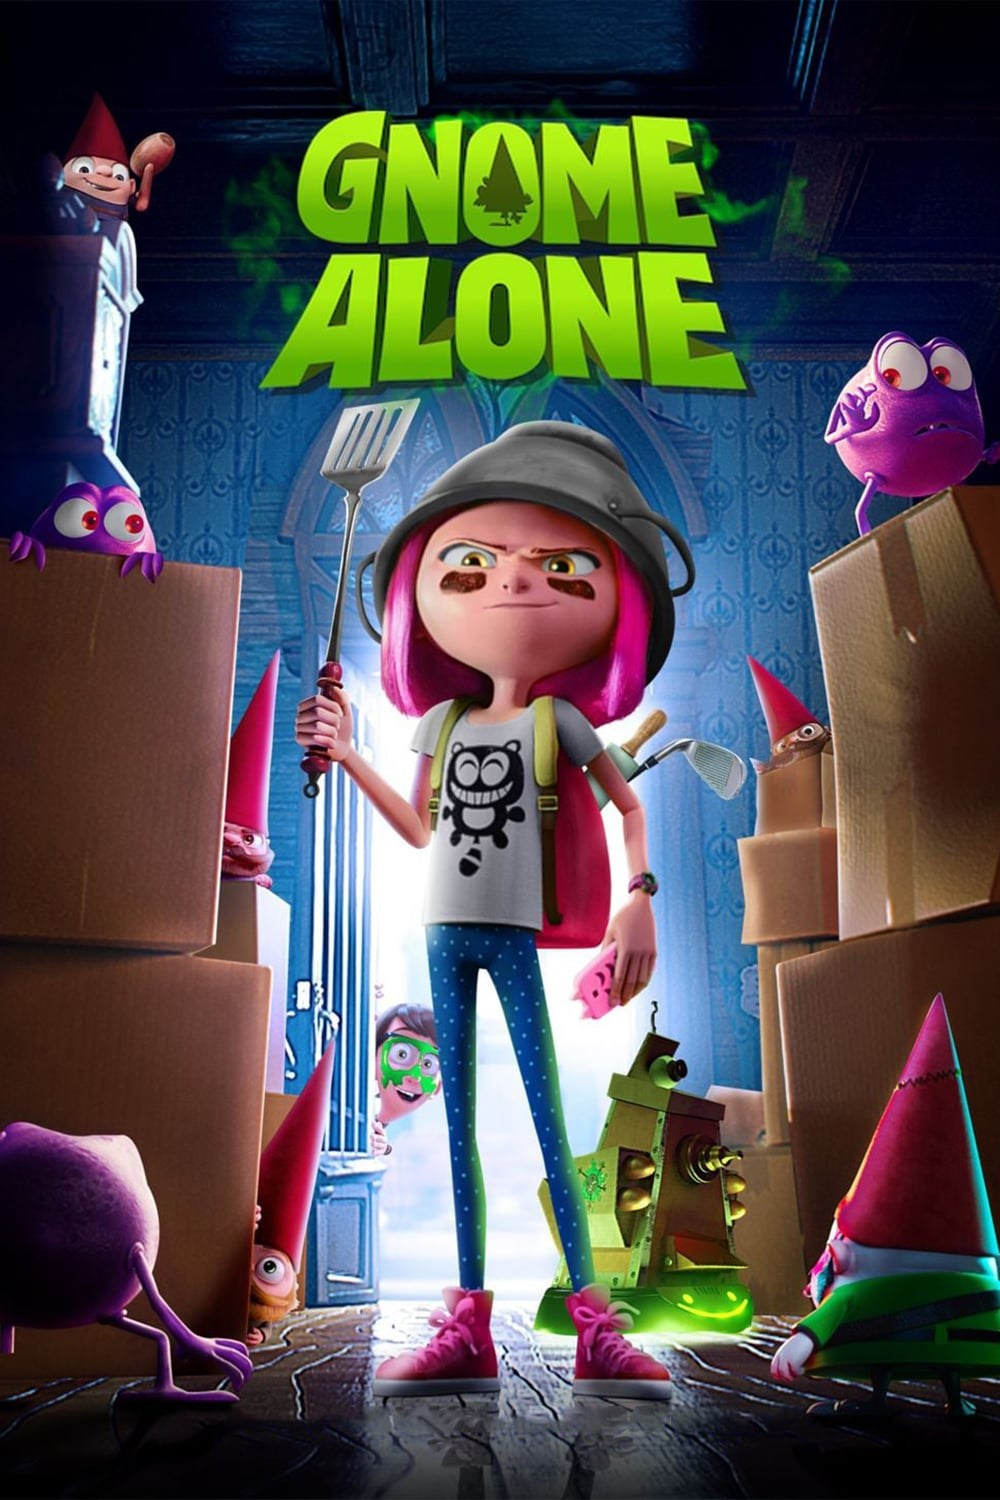 Subscene Gnome Alone Indonesian Subtitle